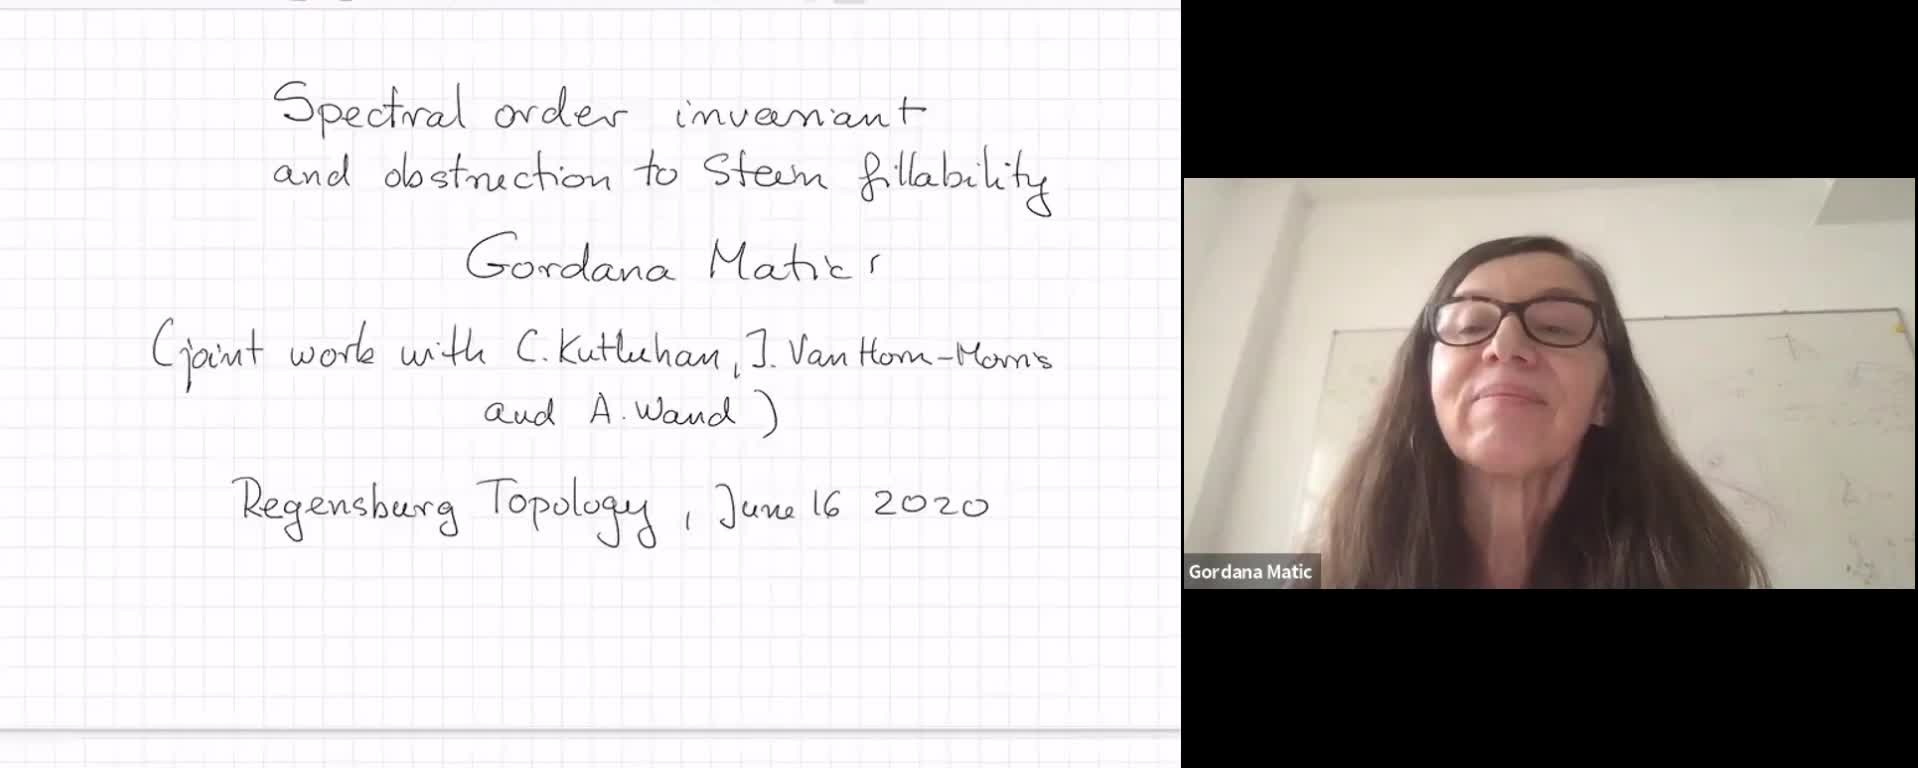 Gordana Matic: Spectral order invariant and obstruction to Stein fillability (RLGTS, 16 June 2020)